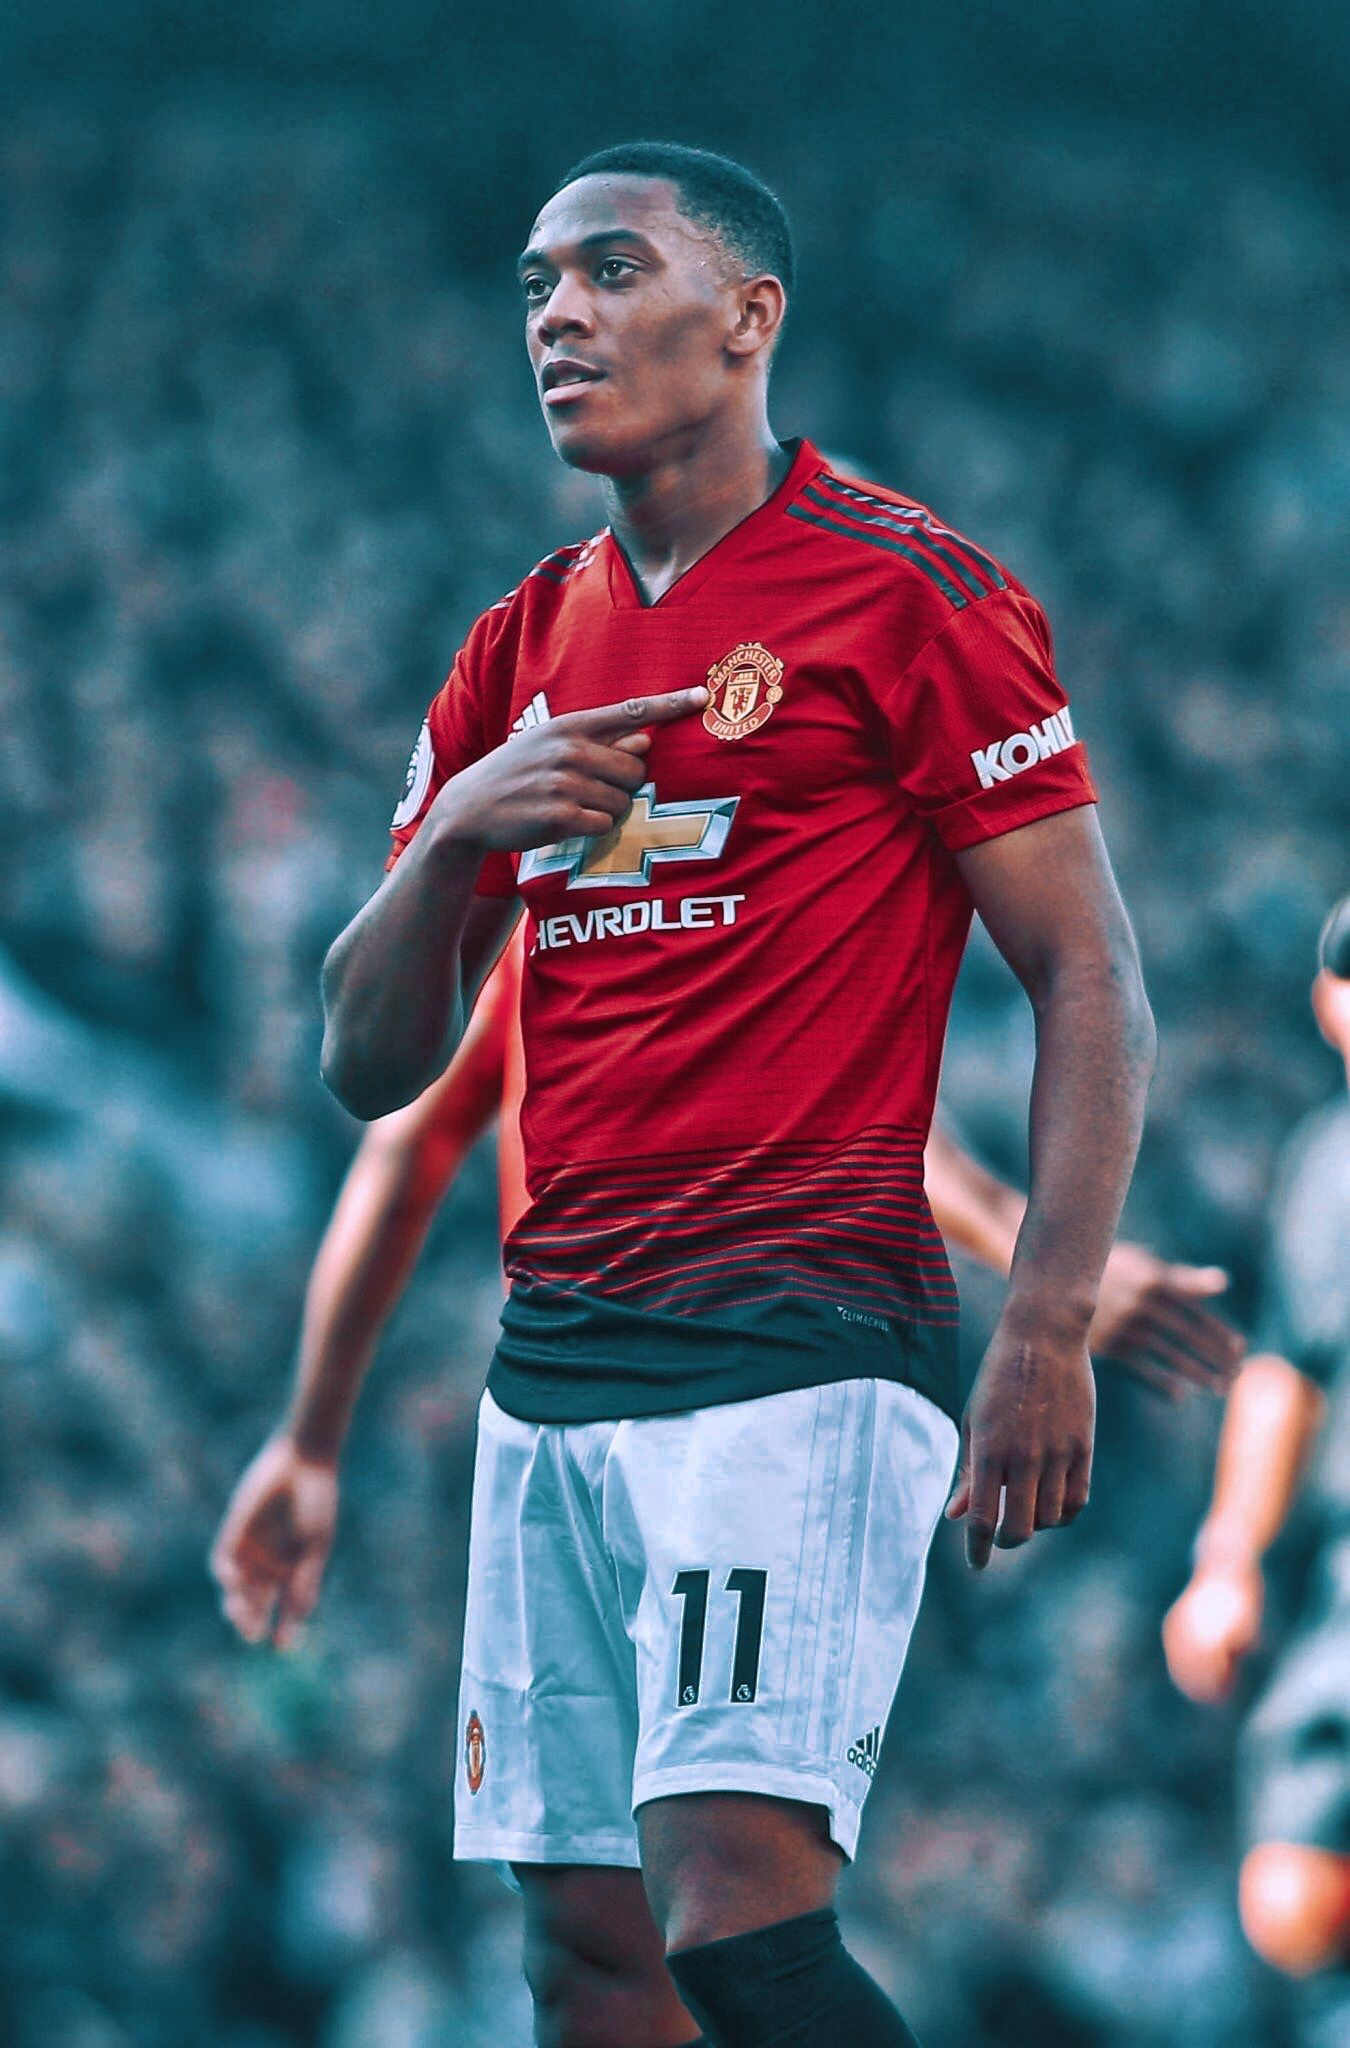 Gw9 Che 2 2 Mun Manchester United Players Manchester United Soccer Manchester United Football Club